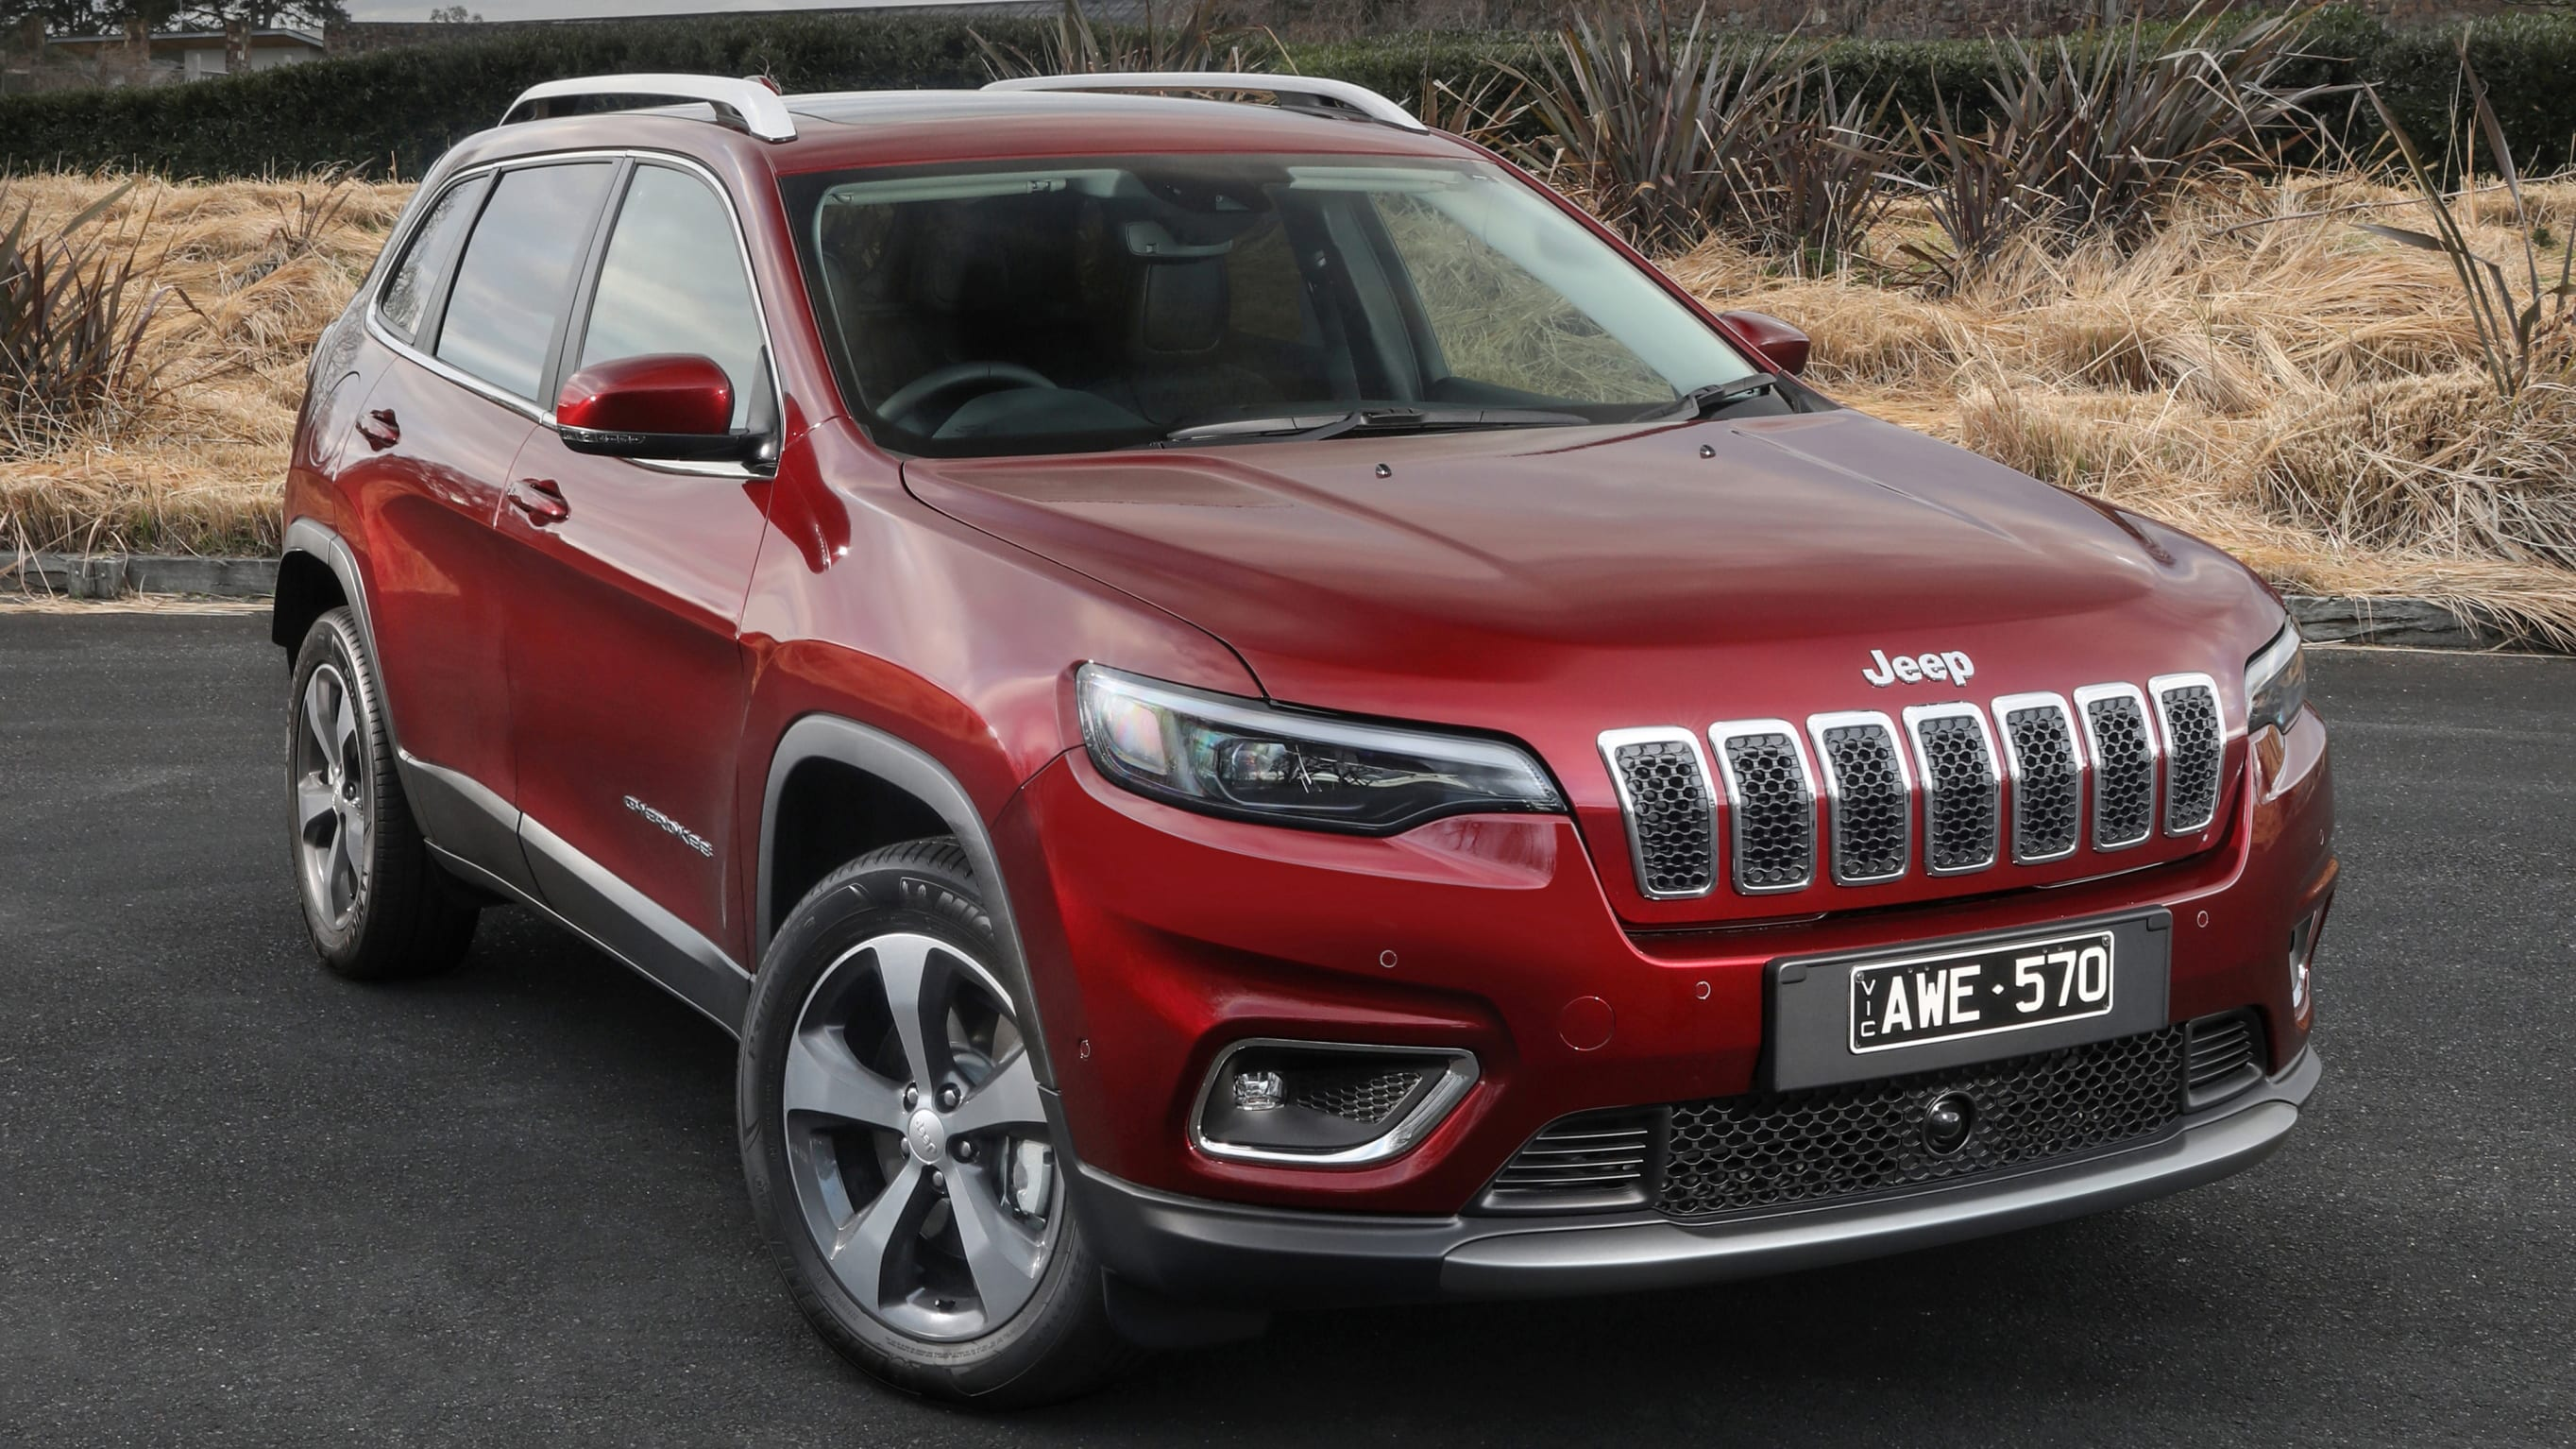 2018 jeep cherokee review 01 limited 18